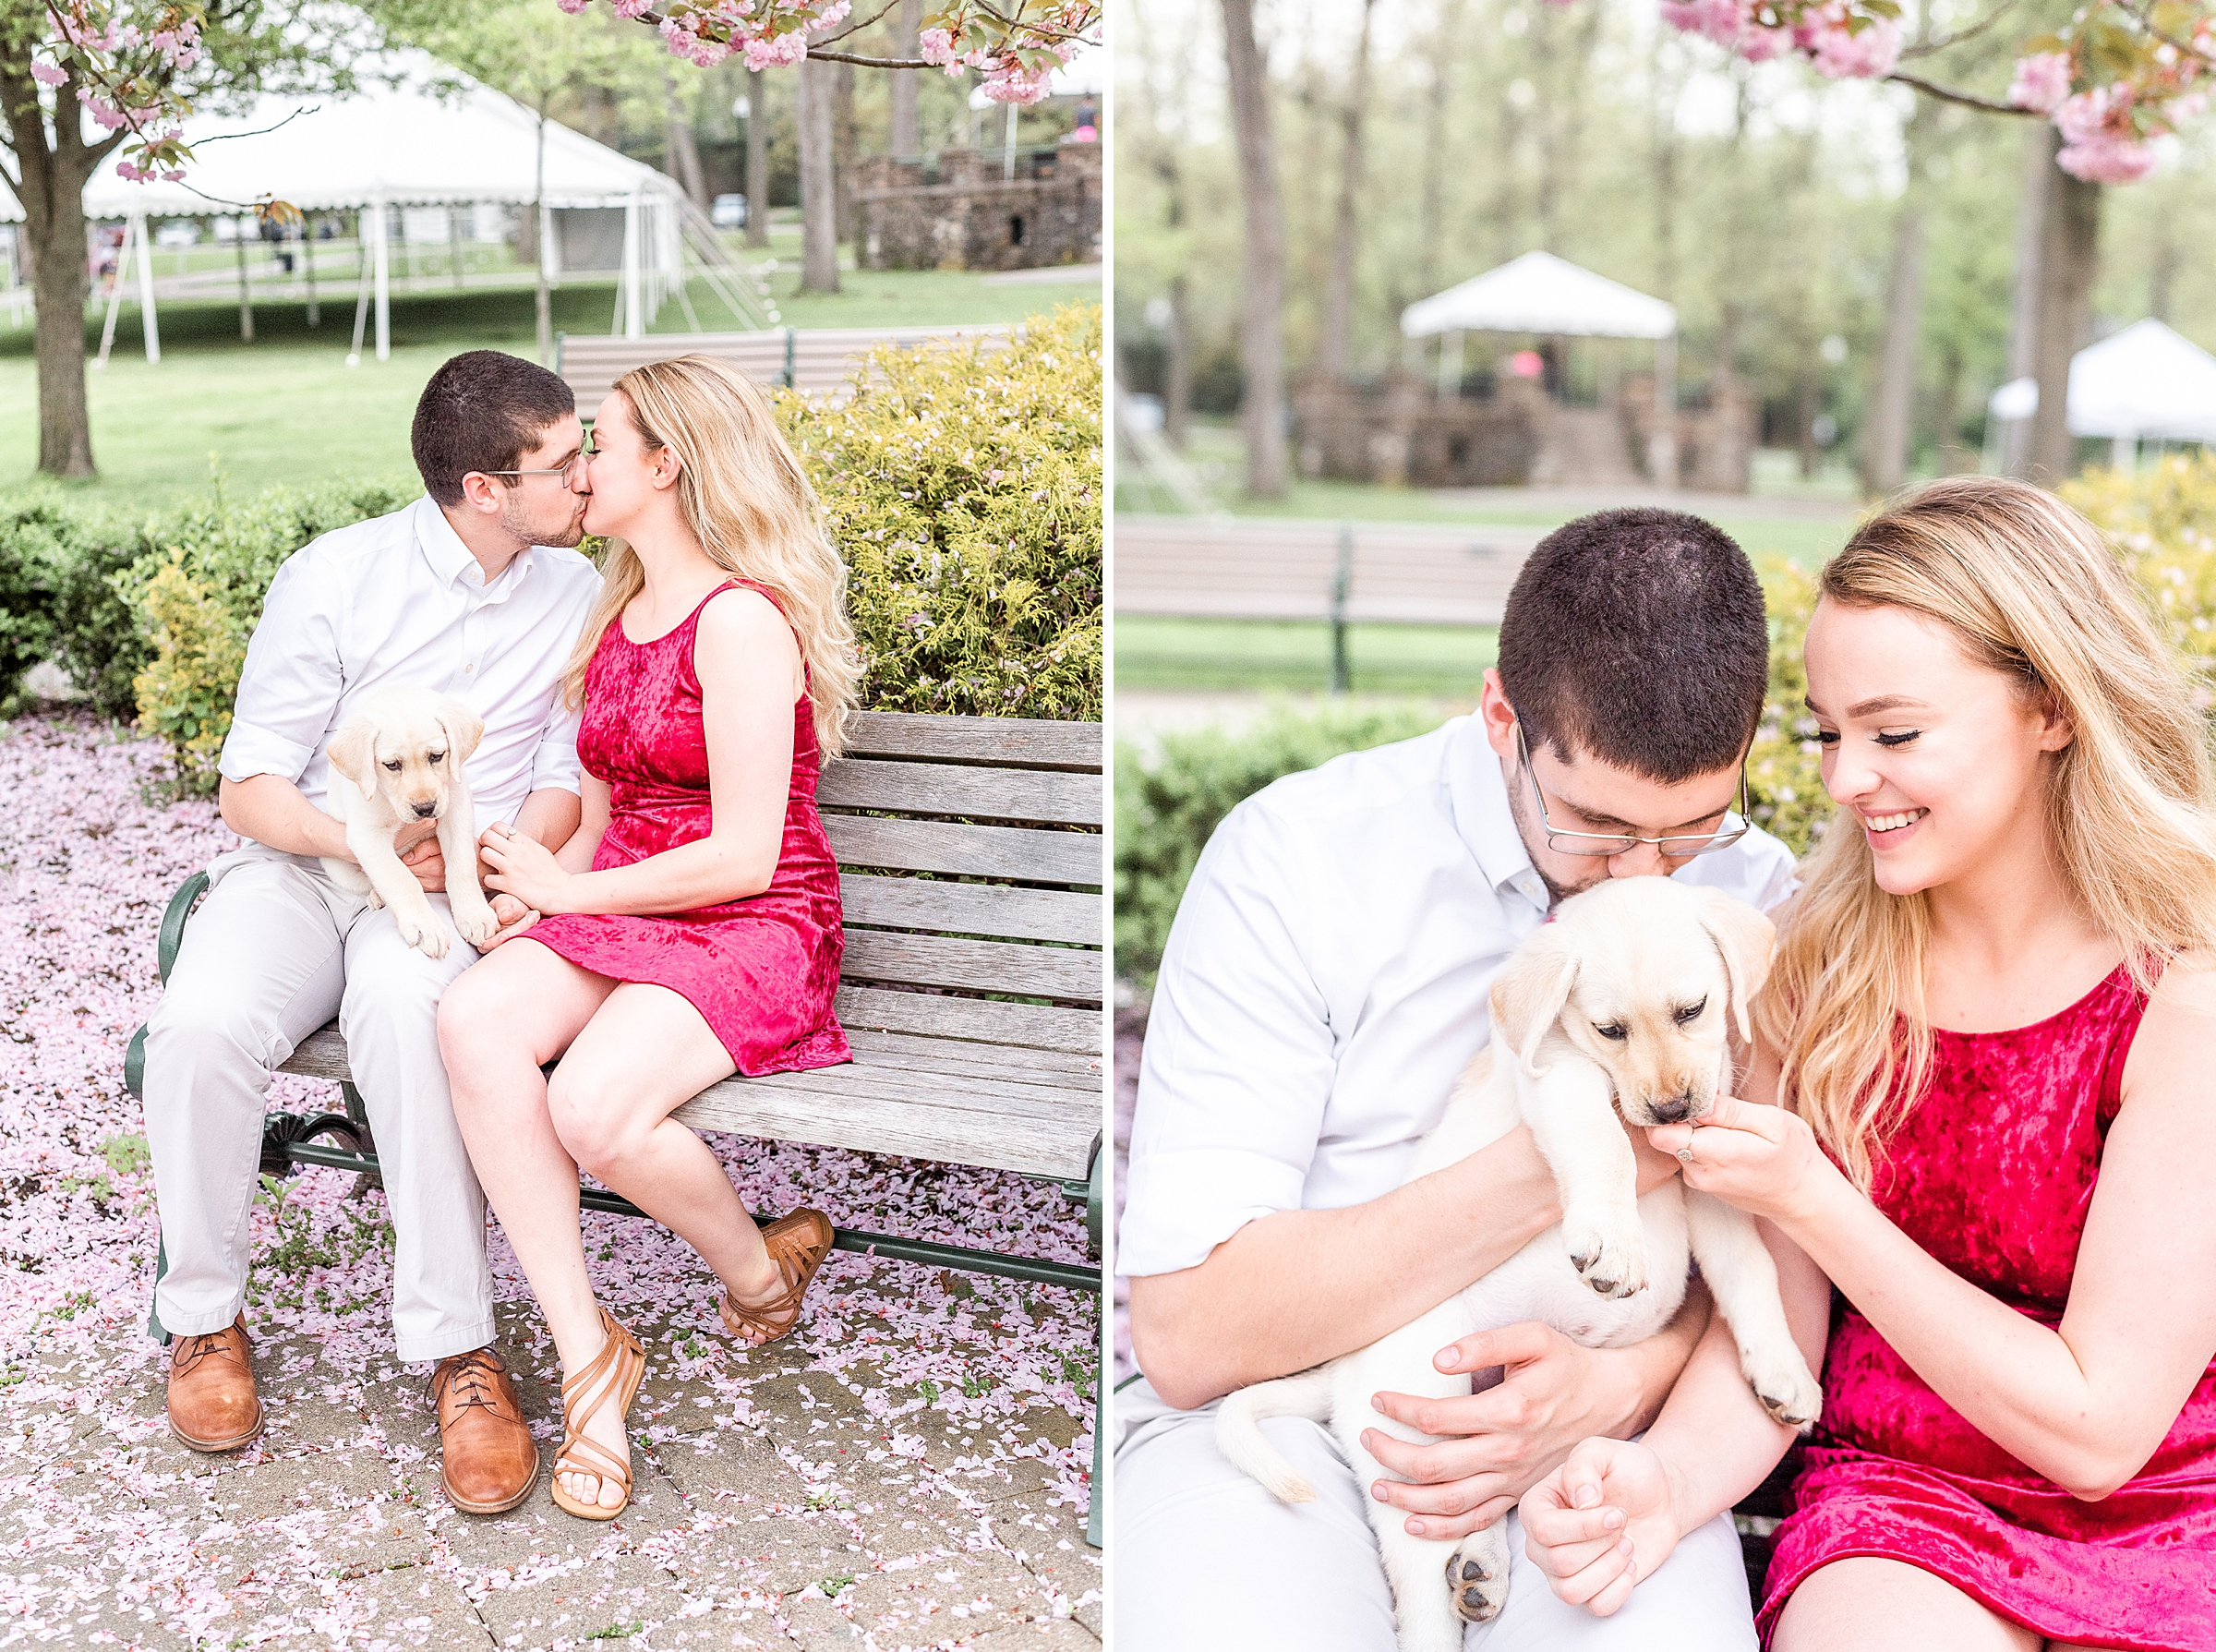 Girlfriend and boyfriend with their puppy sitting on a bench in Verona Park in NJ